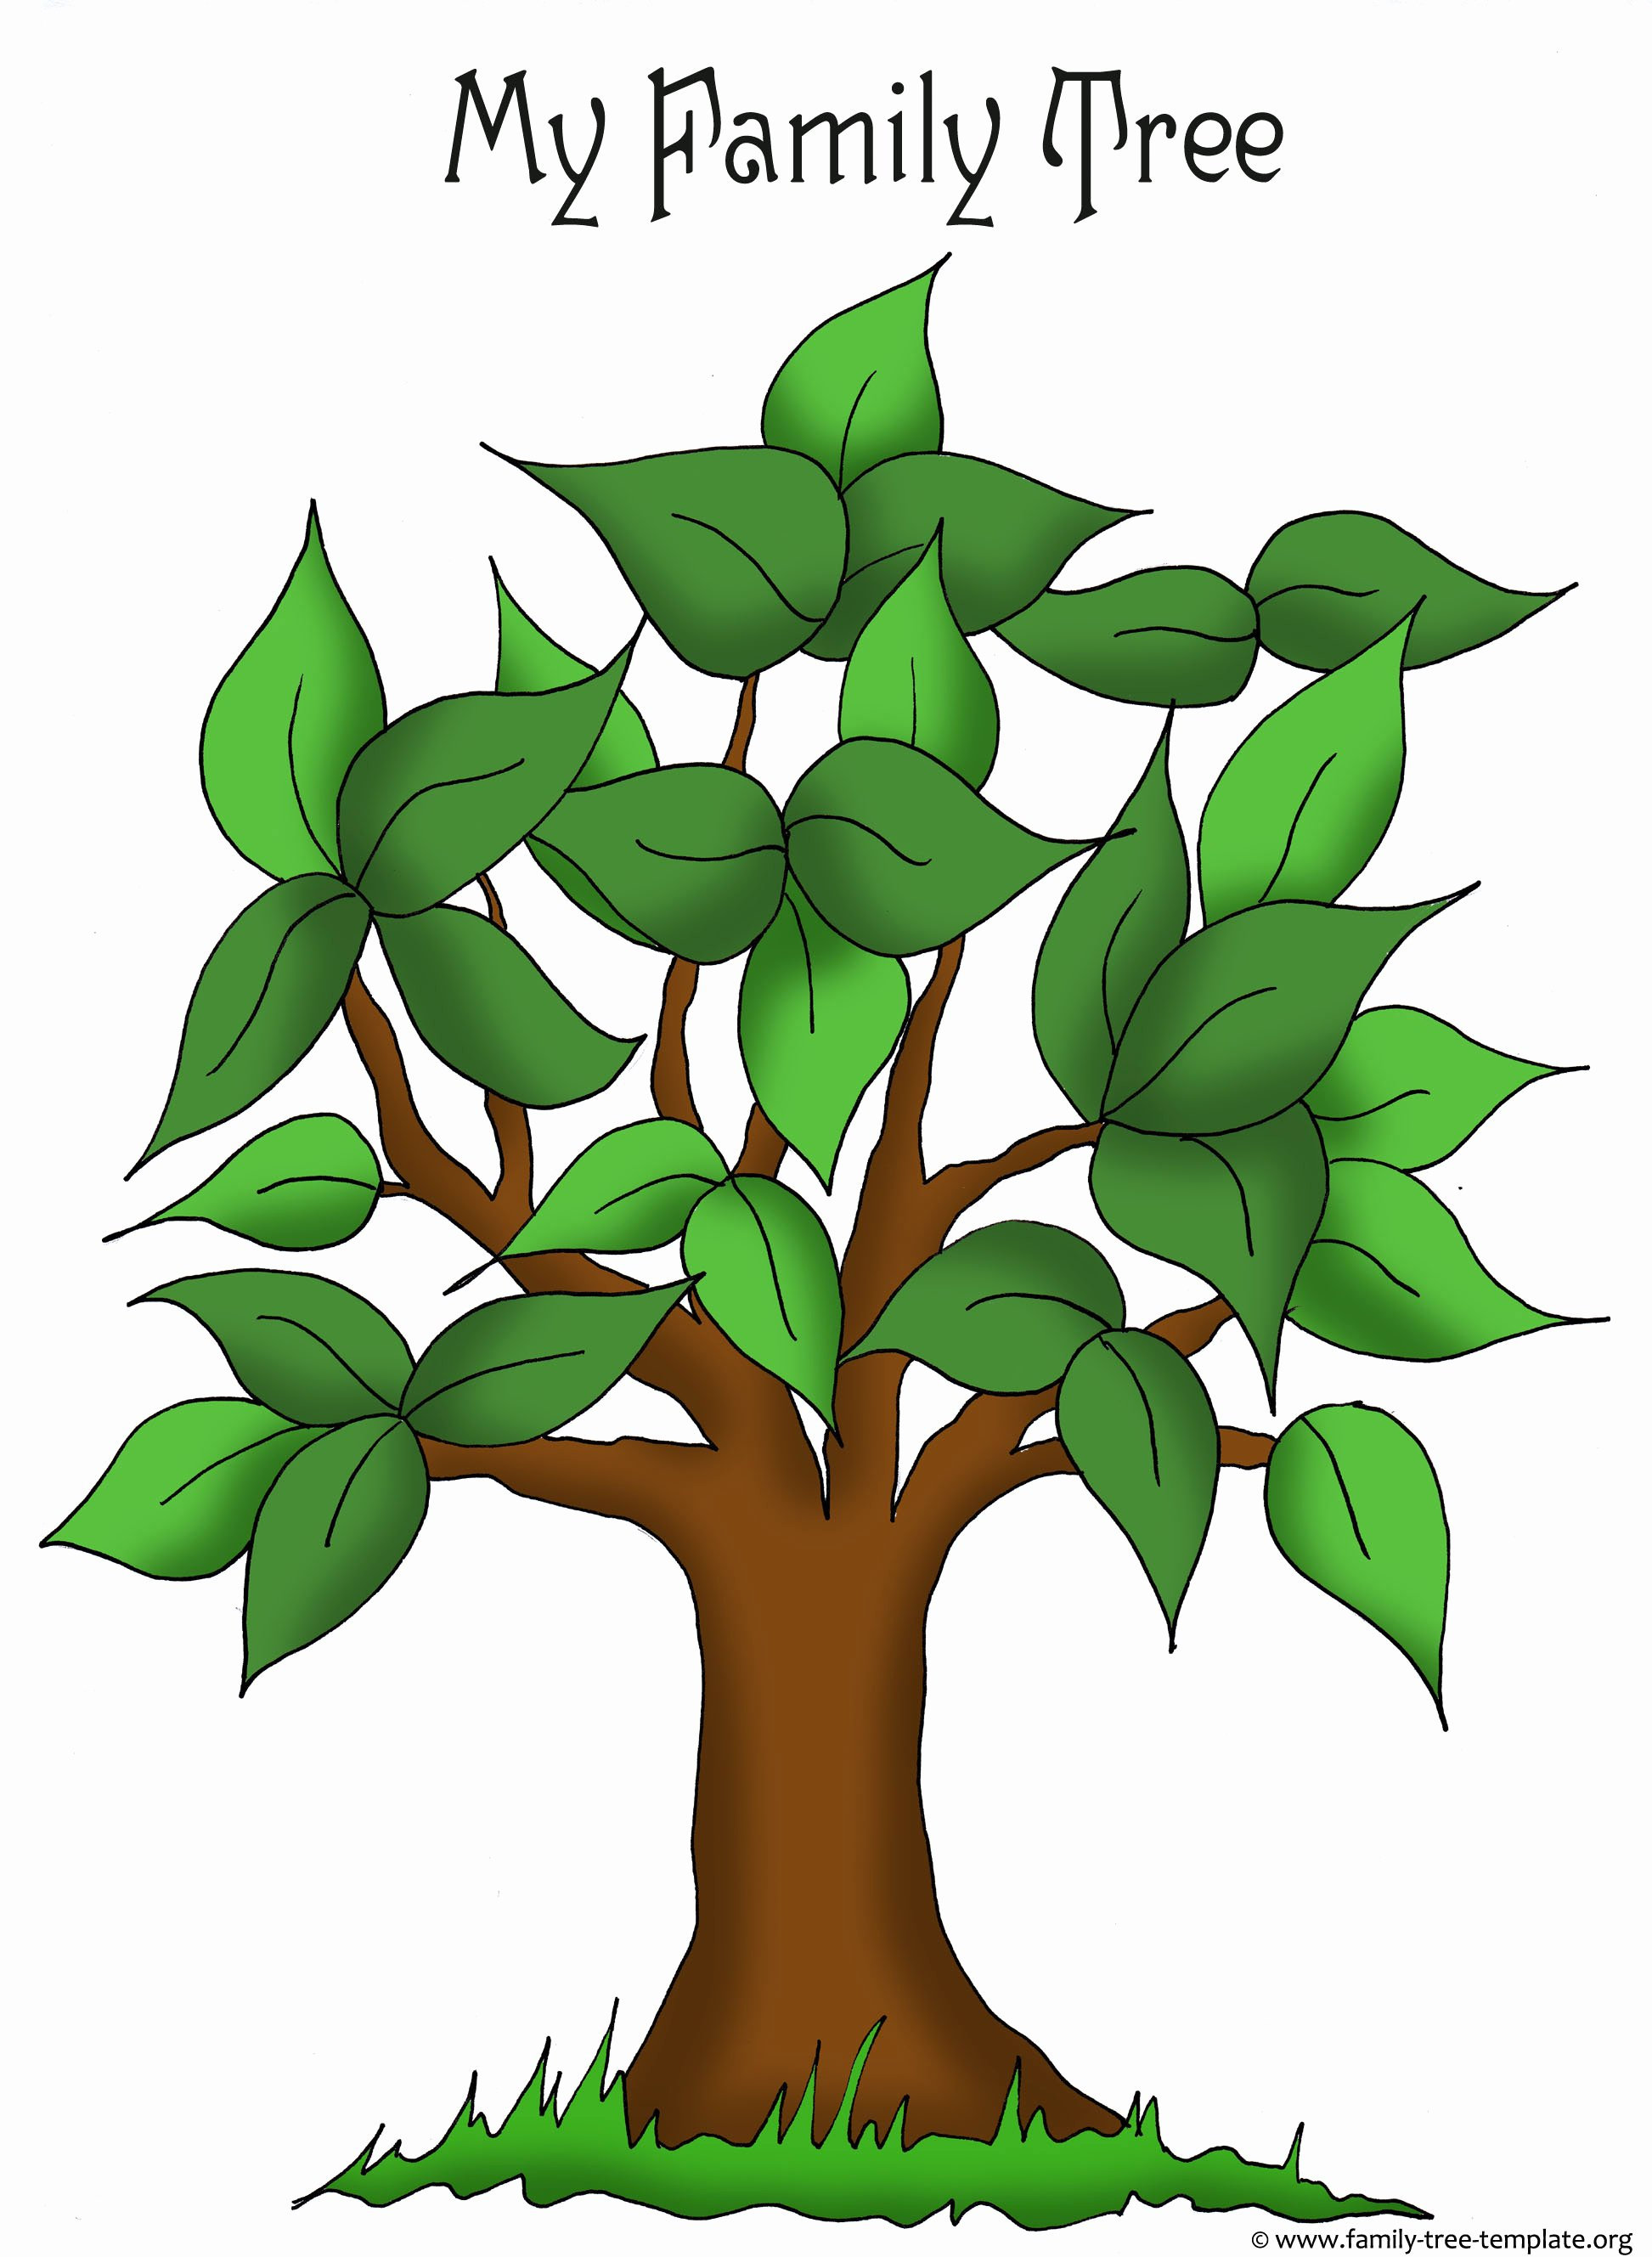 Free Printable Tree Template Lovely Family Tree Templates & Genealogy Clipart for Your